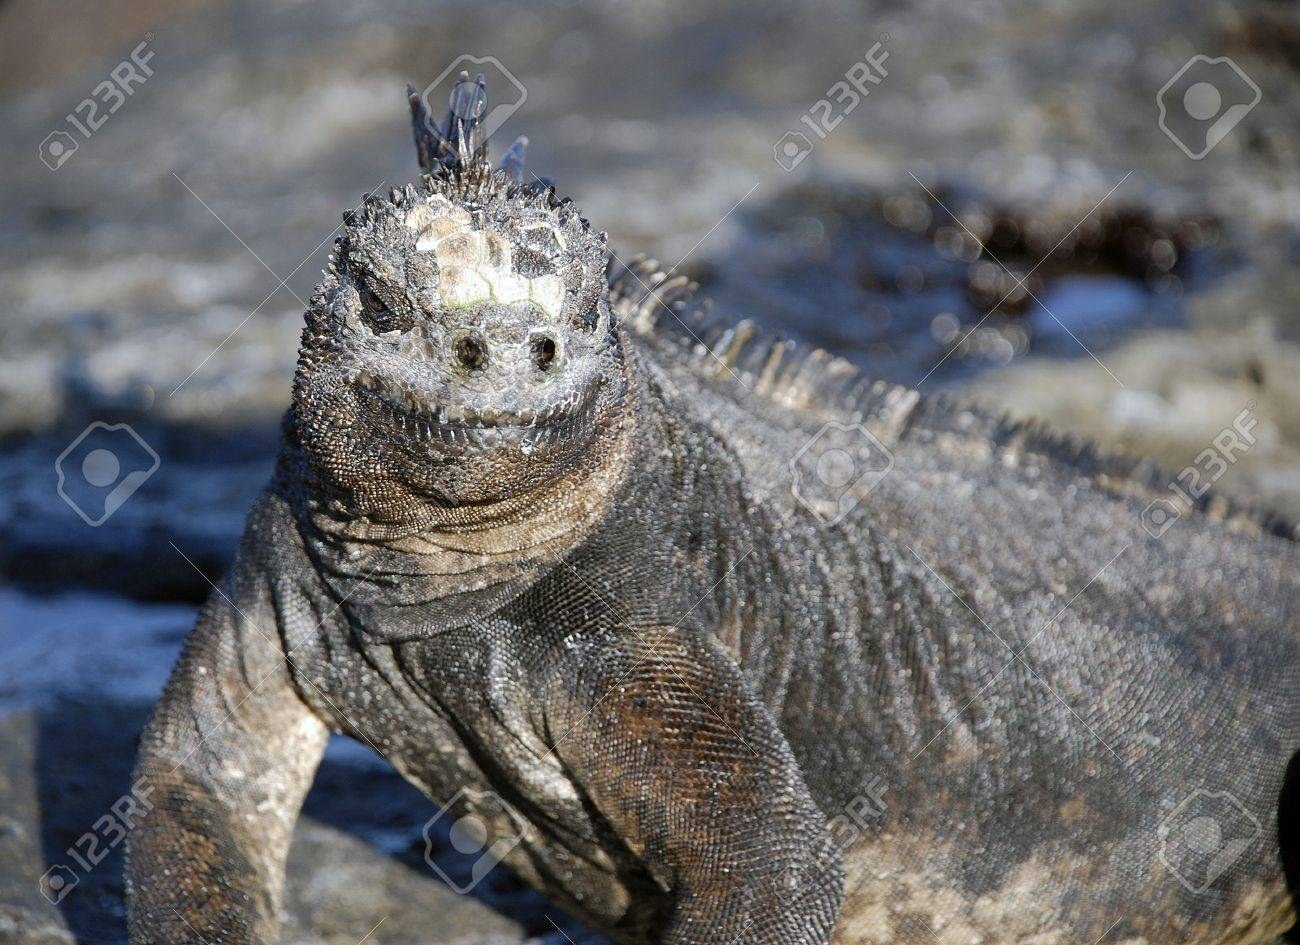 The Marine Iguana Can Only Be Found In The Galapagos Islands